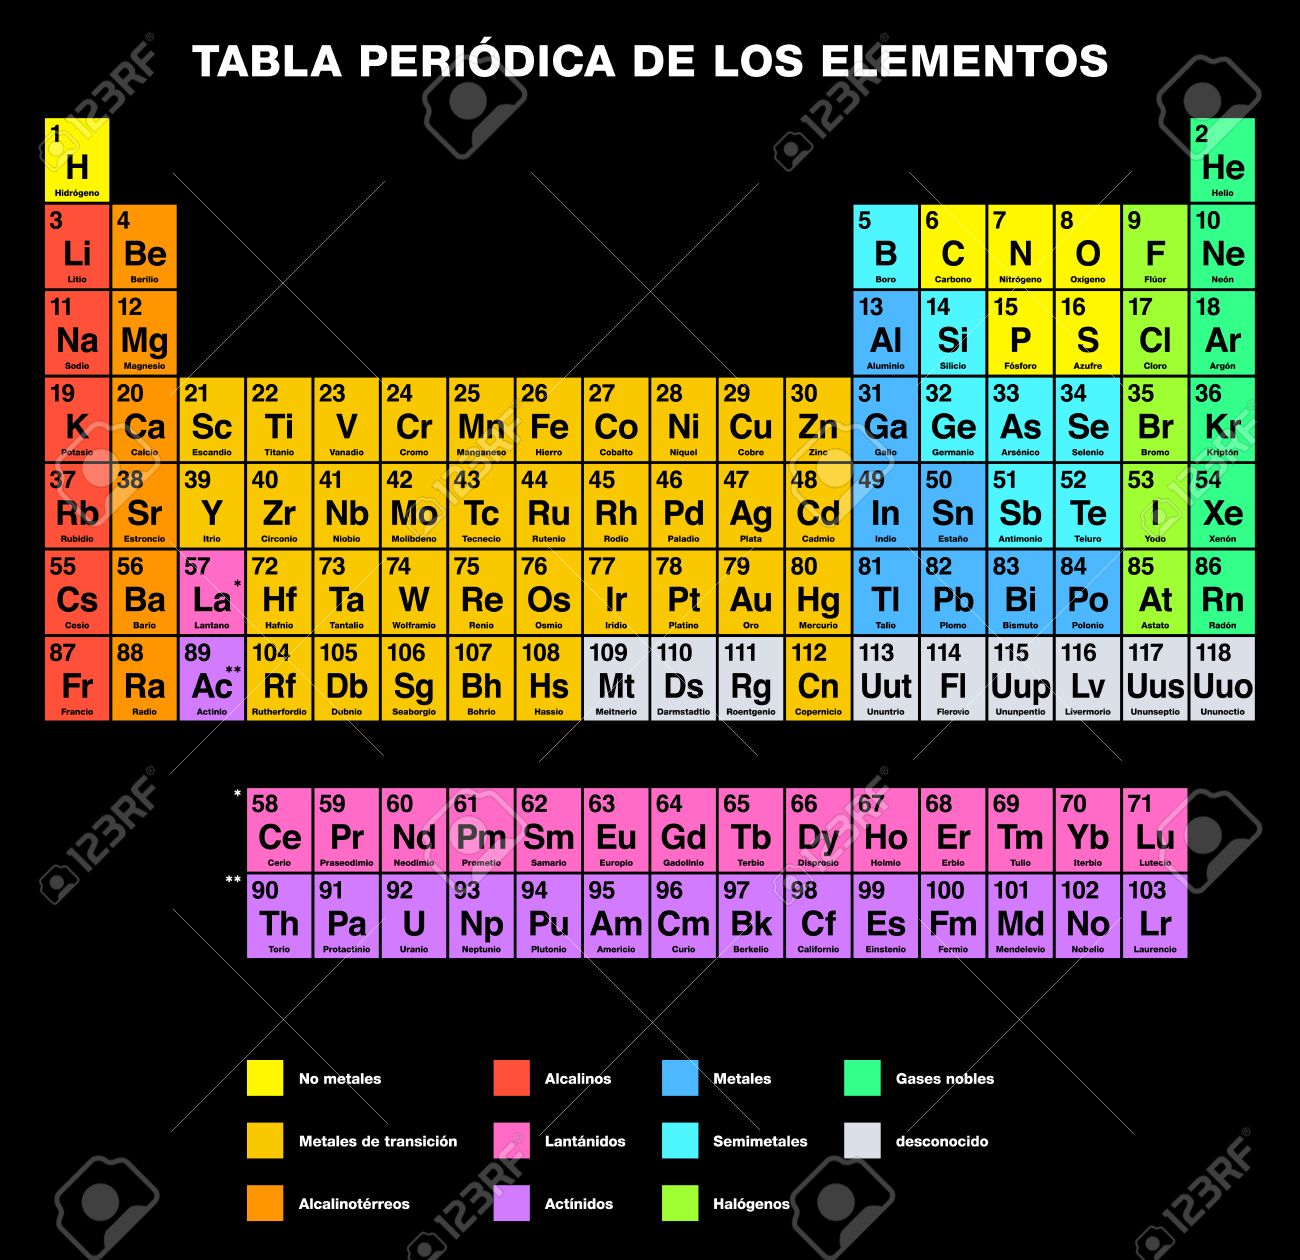 Periodic table of the elements spanish labeling tabular periodic table of the elements spanish labeling tabular arrangement of chemical elements with atomic numbers gamestrikefo Image collections